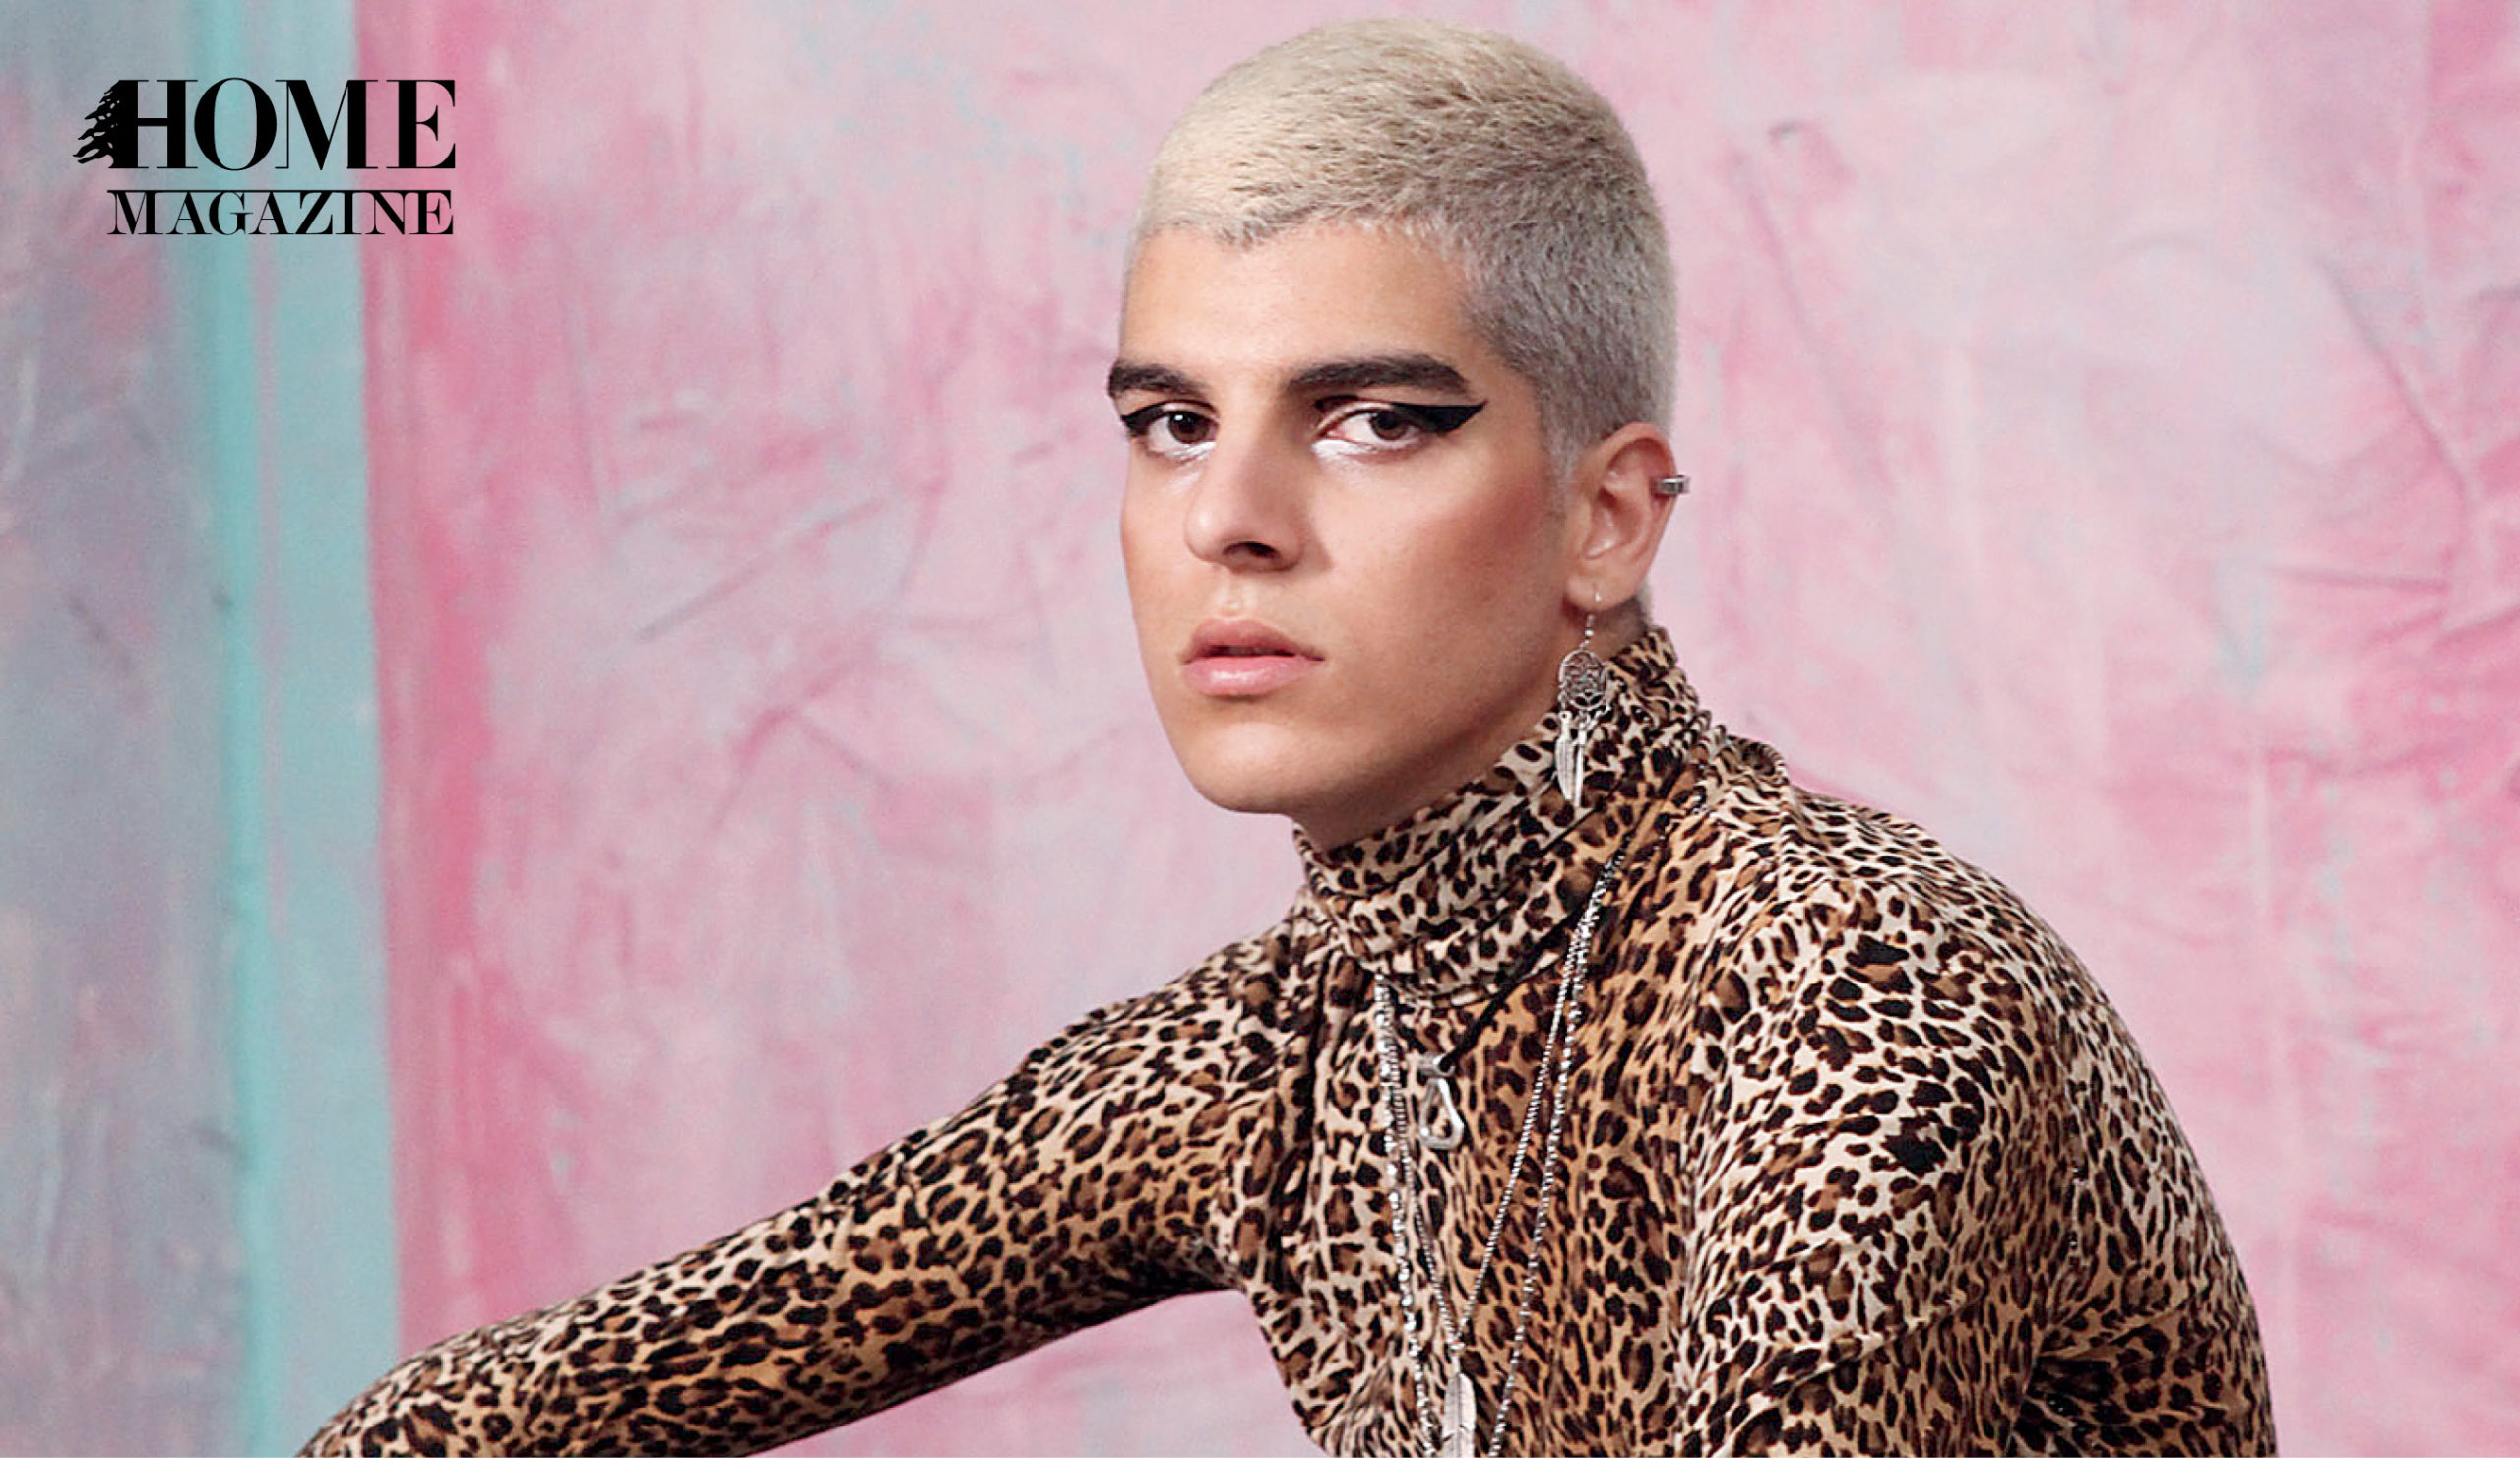 A man with blond hair and make up wearing a tiger printed shirt